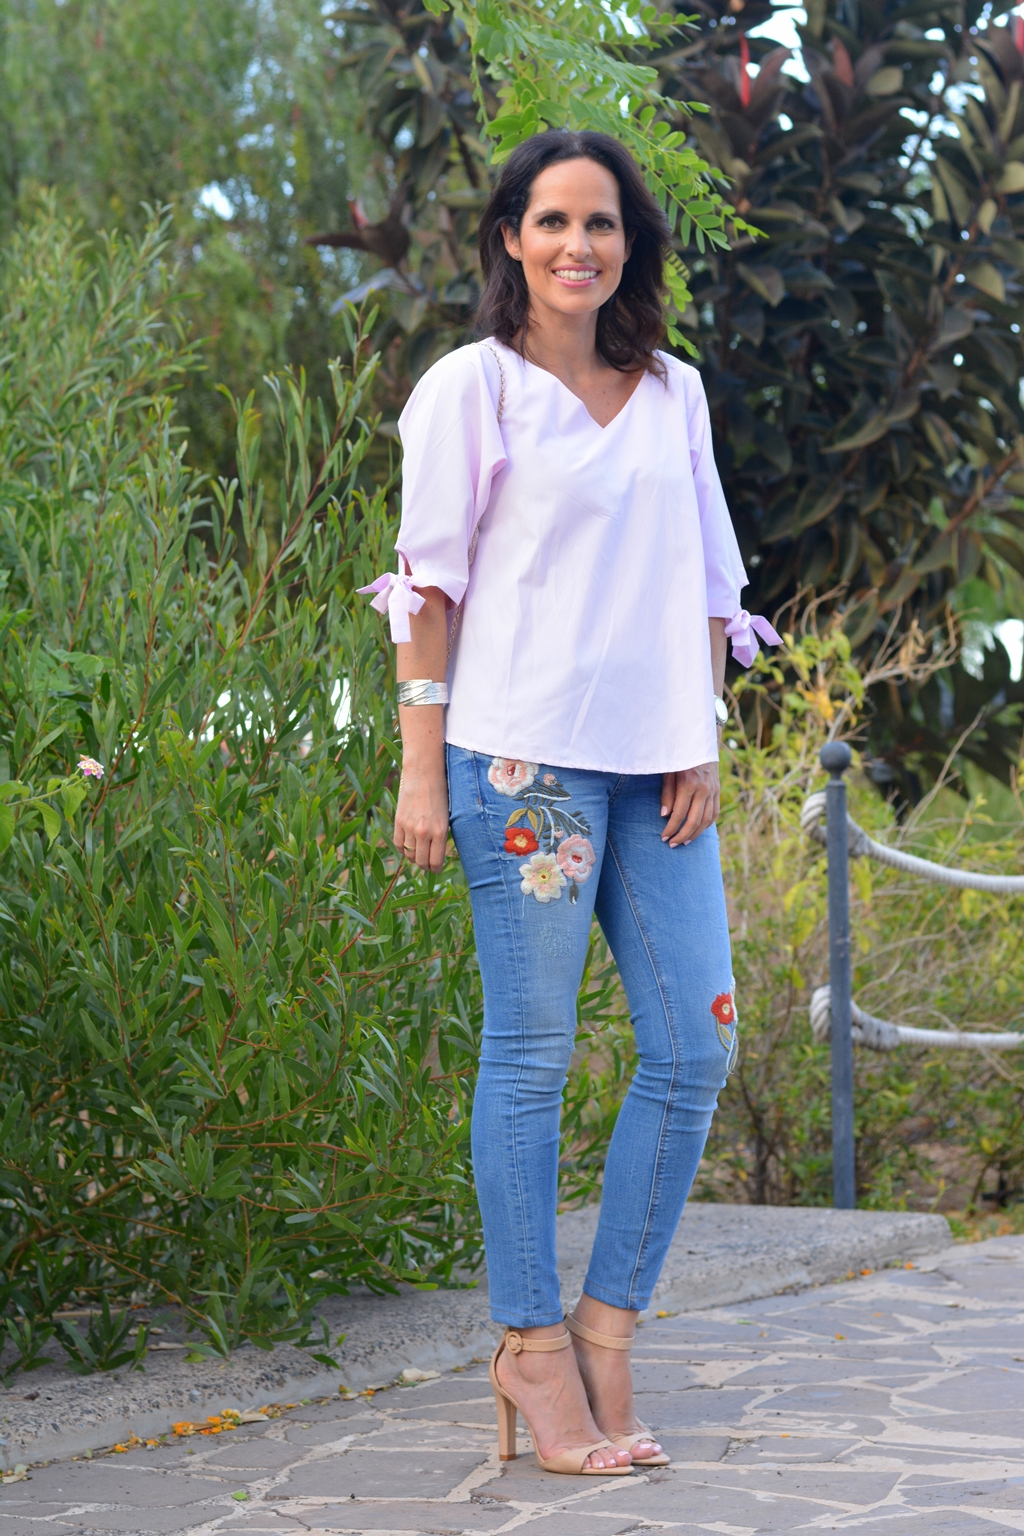 zara-outfit-embroidered-jeans-daily-looks